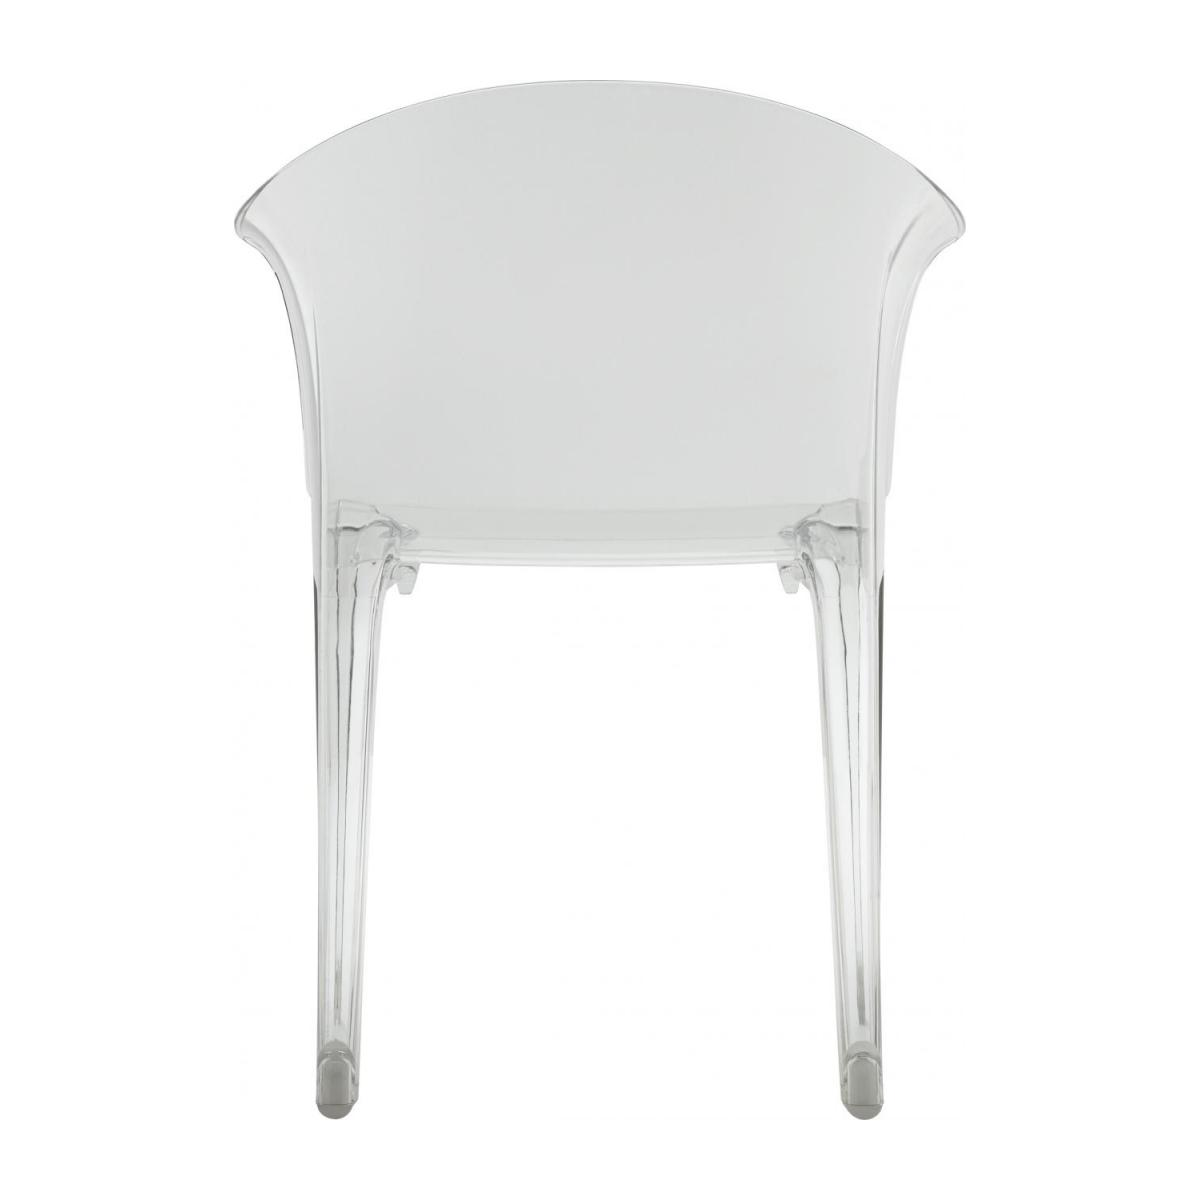 Transparent armchair in polycarbonate n°5